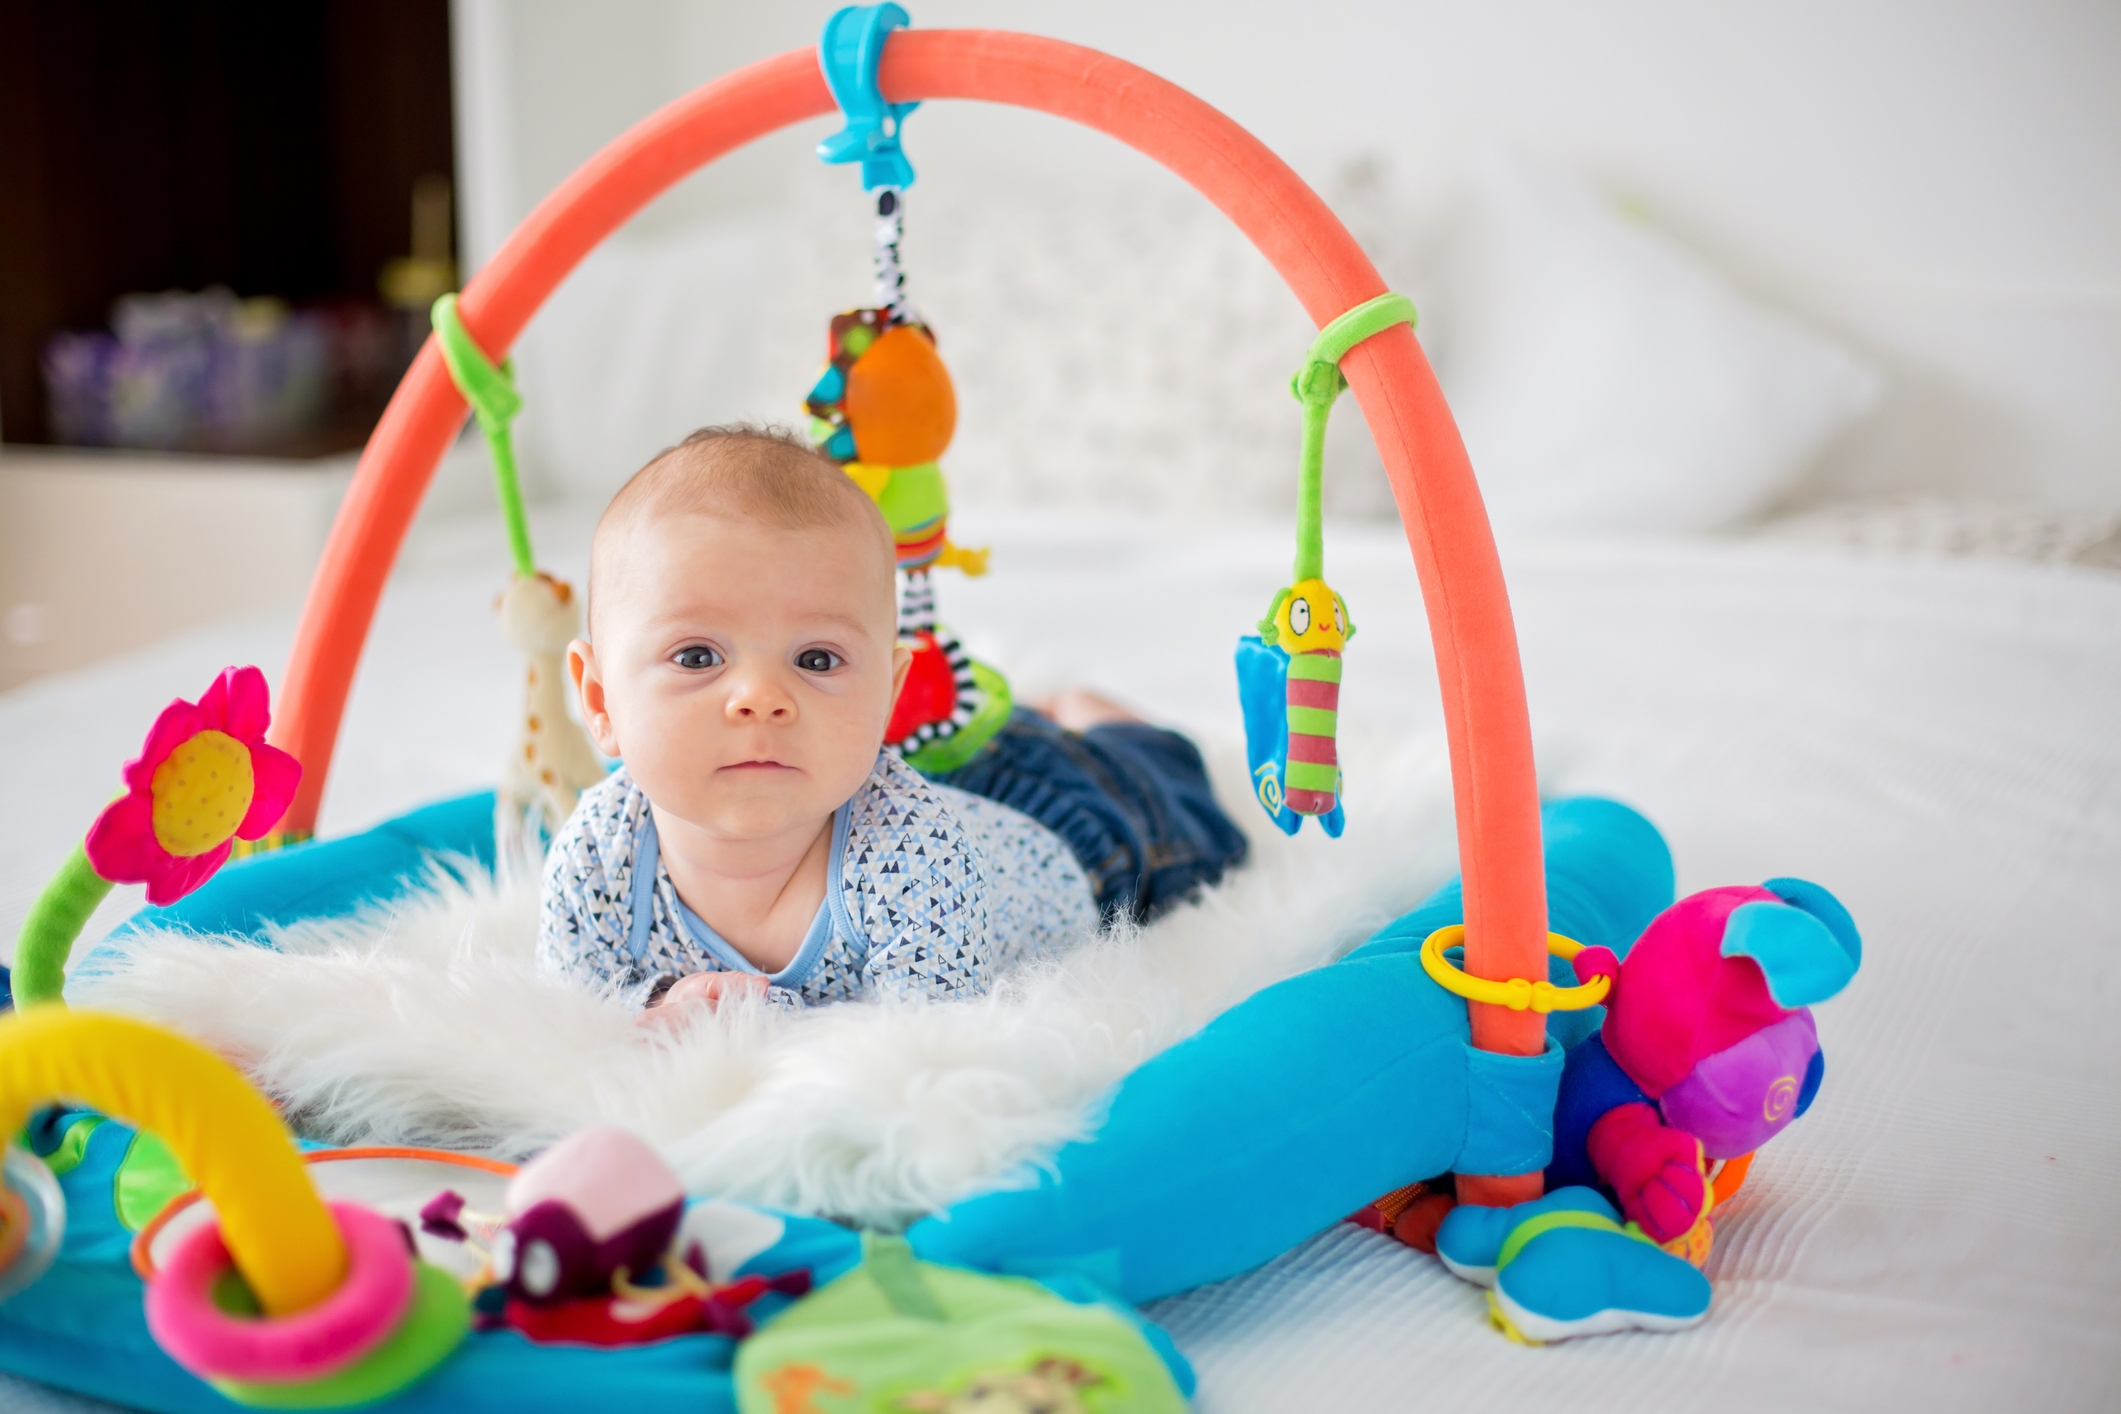 Cute baby boy on colorful gym, playing with hanging toys at home